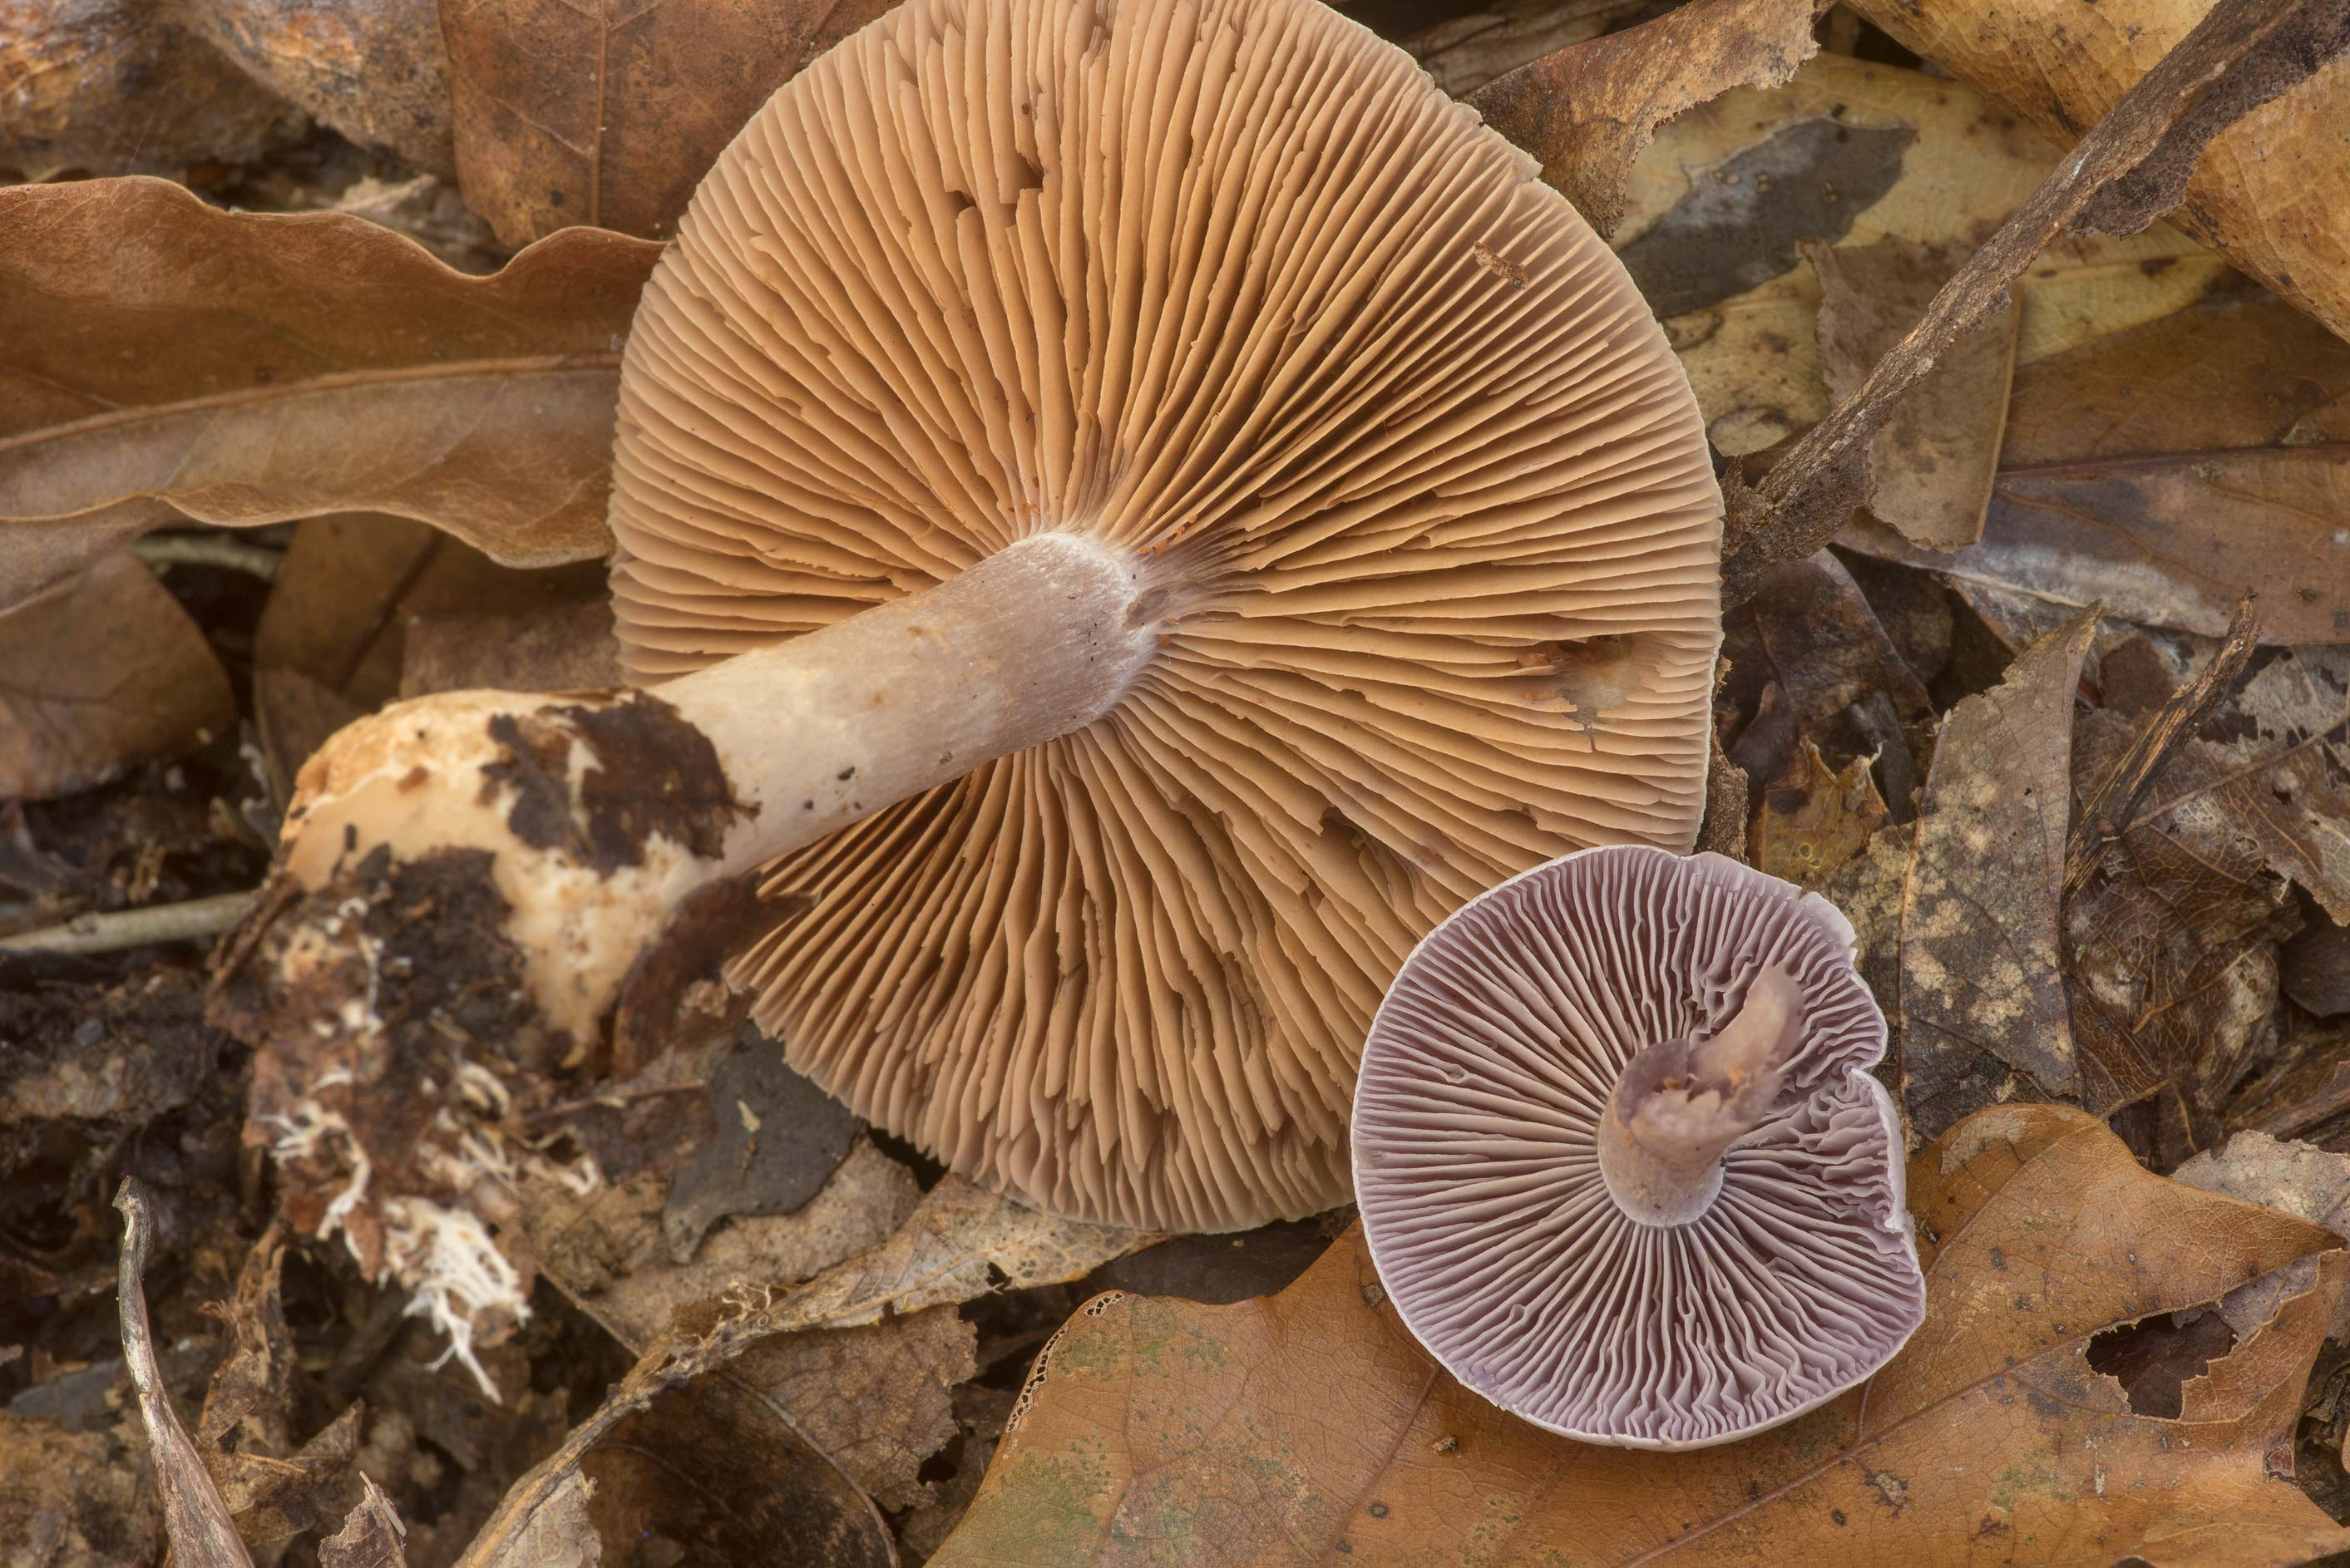 Gills of pearly webcap mushrooms (Cortinarius...to Market Rd. 770 near Kountze. Texas